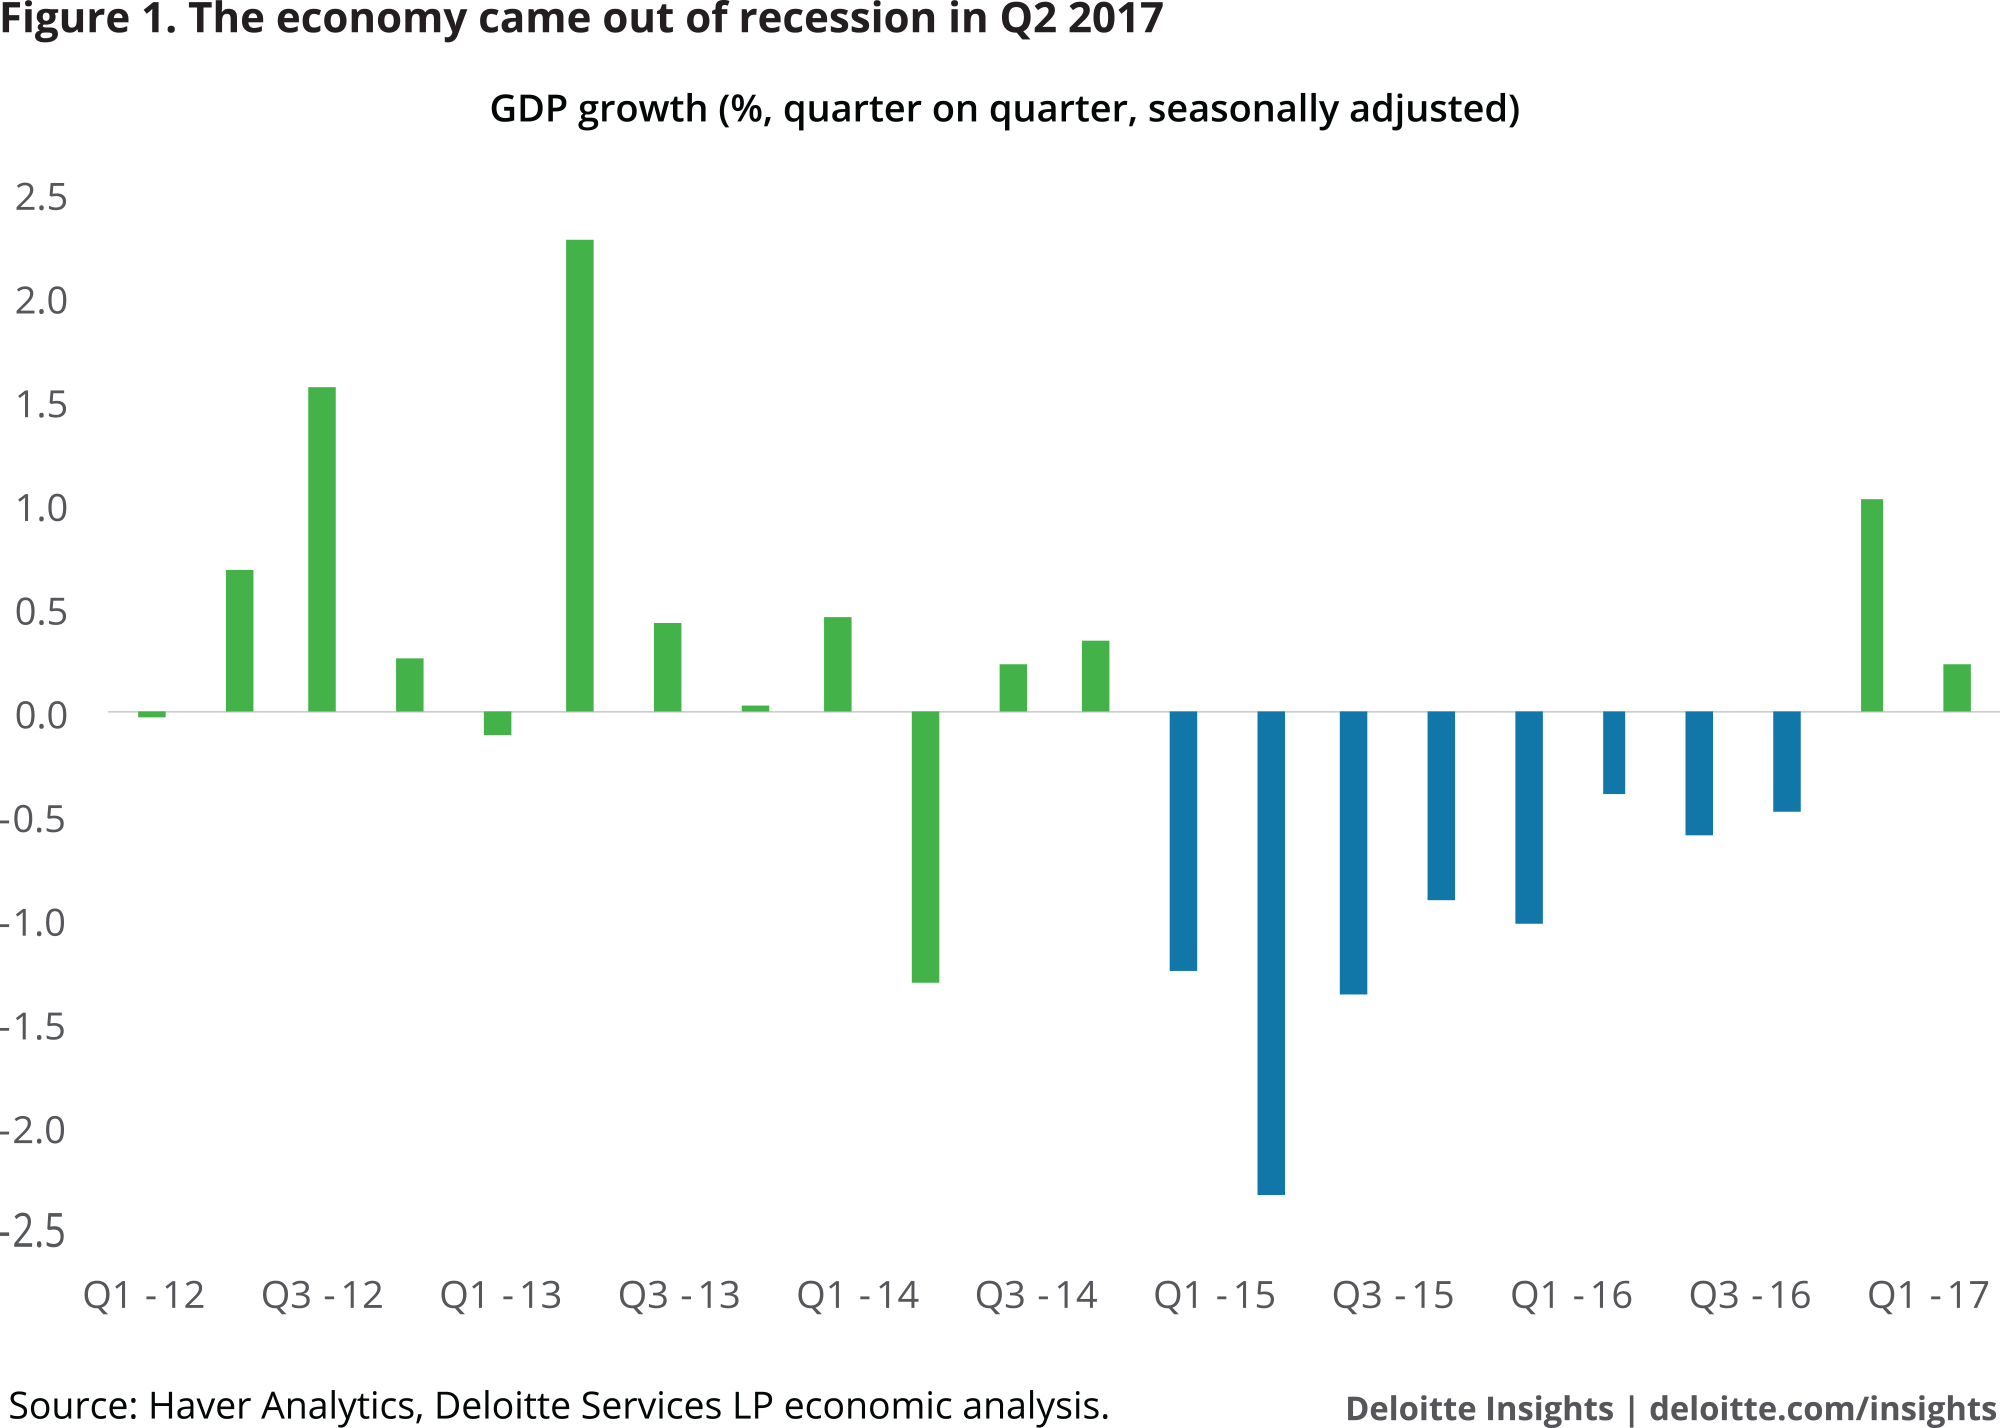 The economy came out of recession in Q2 2017